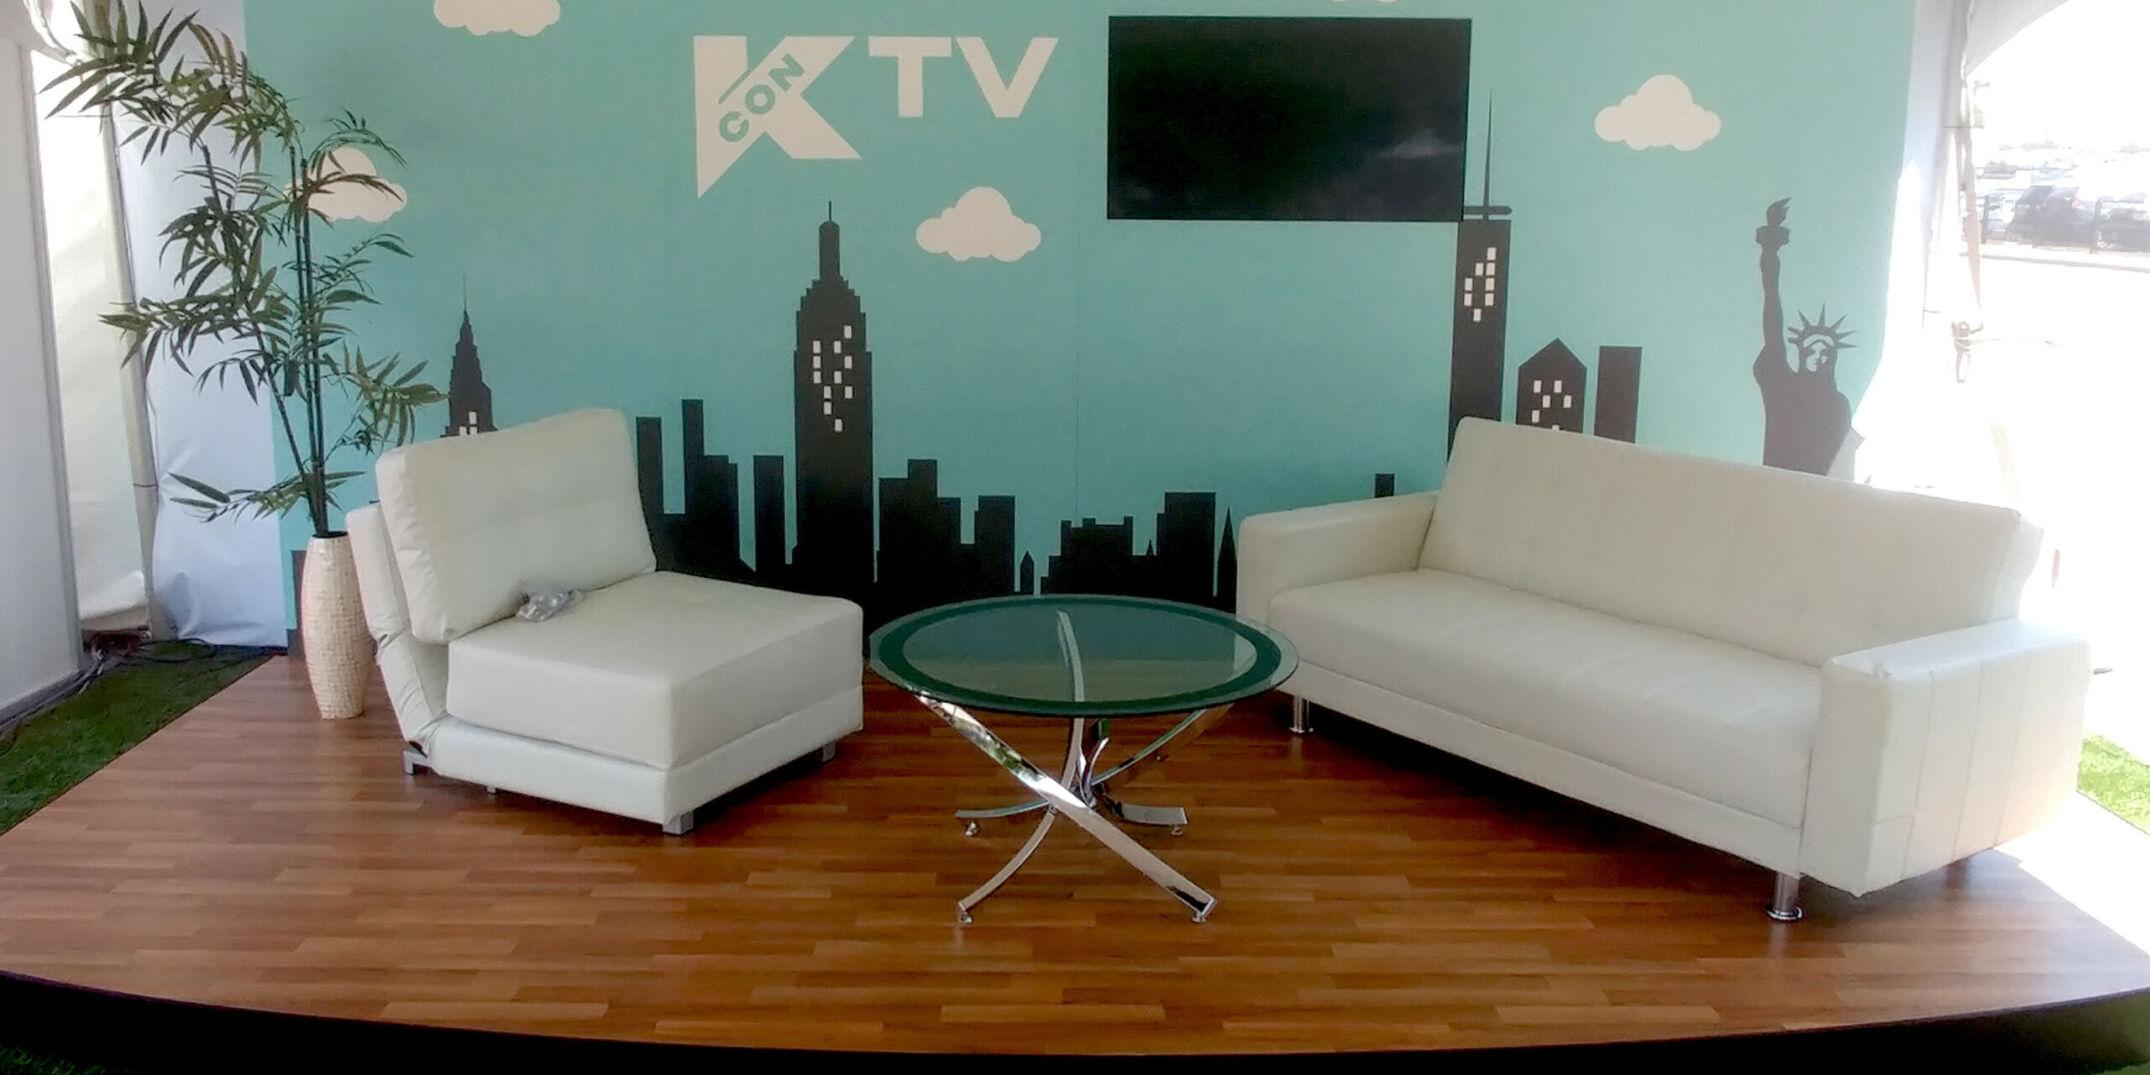 demo backdrop. TV set stage for Kcon with graphic wall, wood flooring, monitor and modern furniture for TV interviews